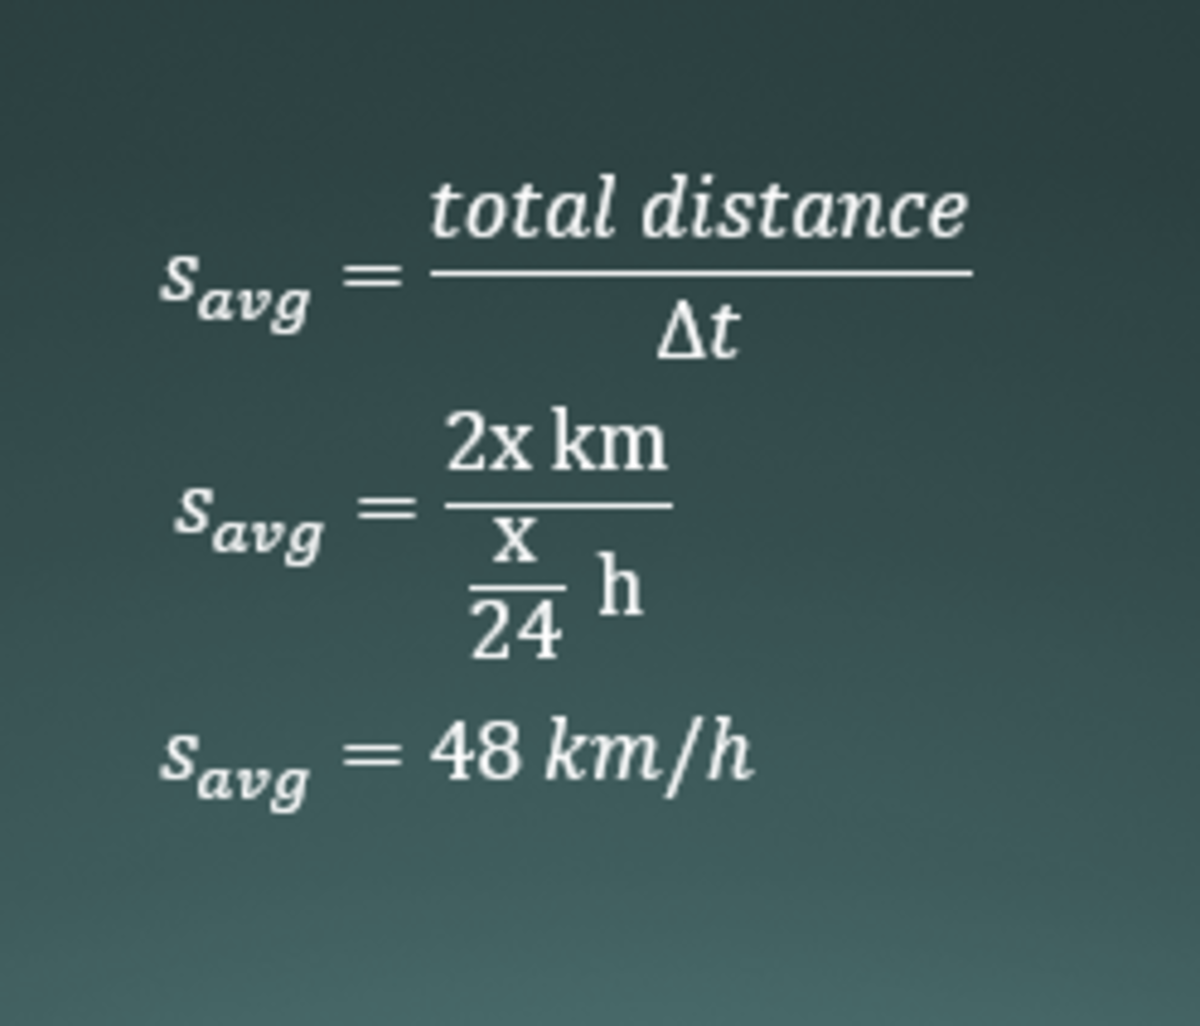 moving average sample problems with solutions Fun math practice improve your skills with free problems in 'weighted averages: word problems' and thousands of other practice lessons.